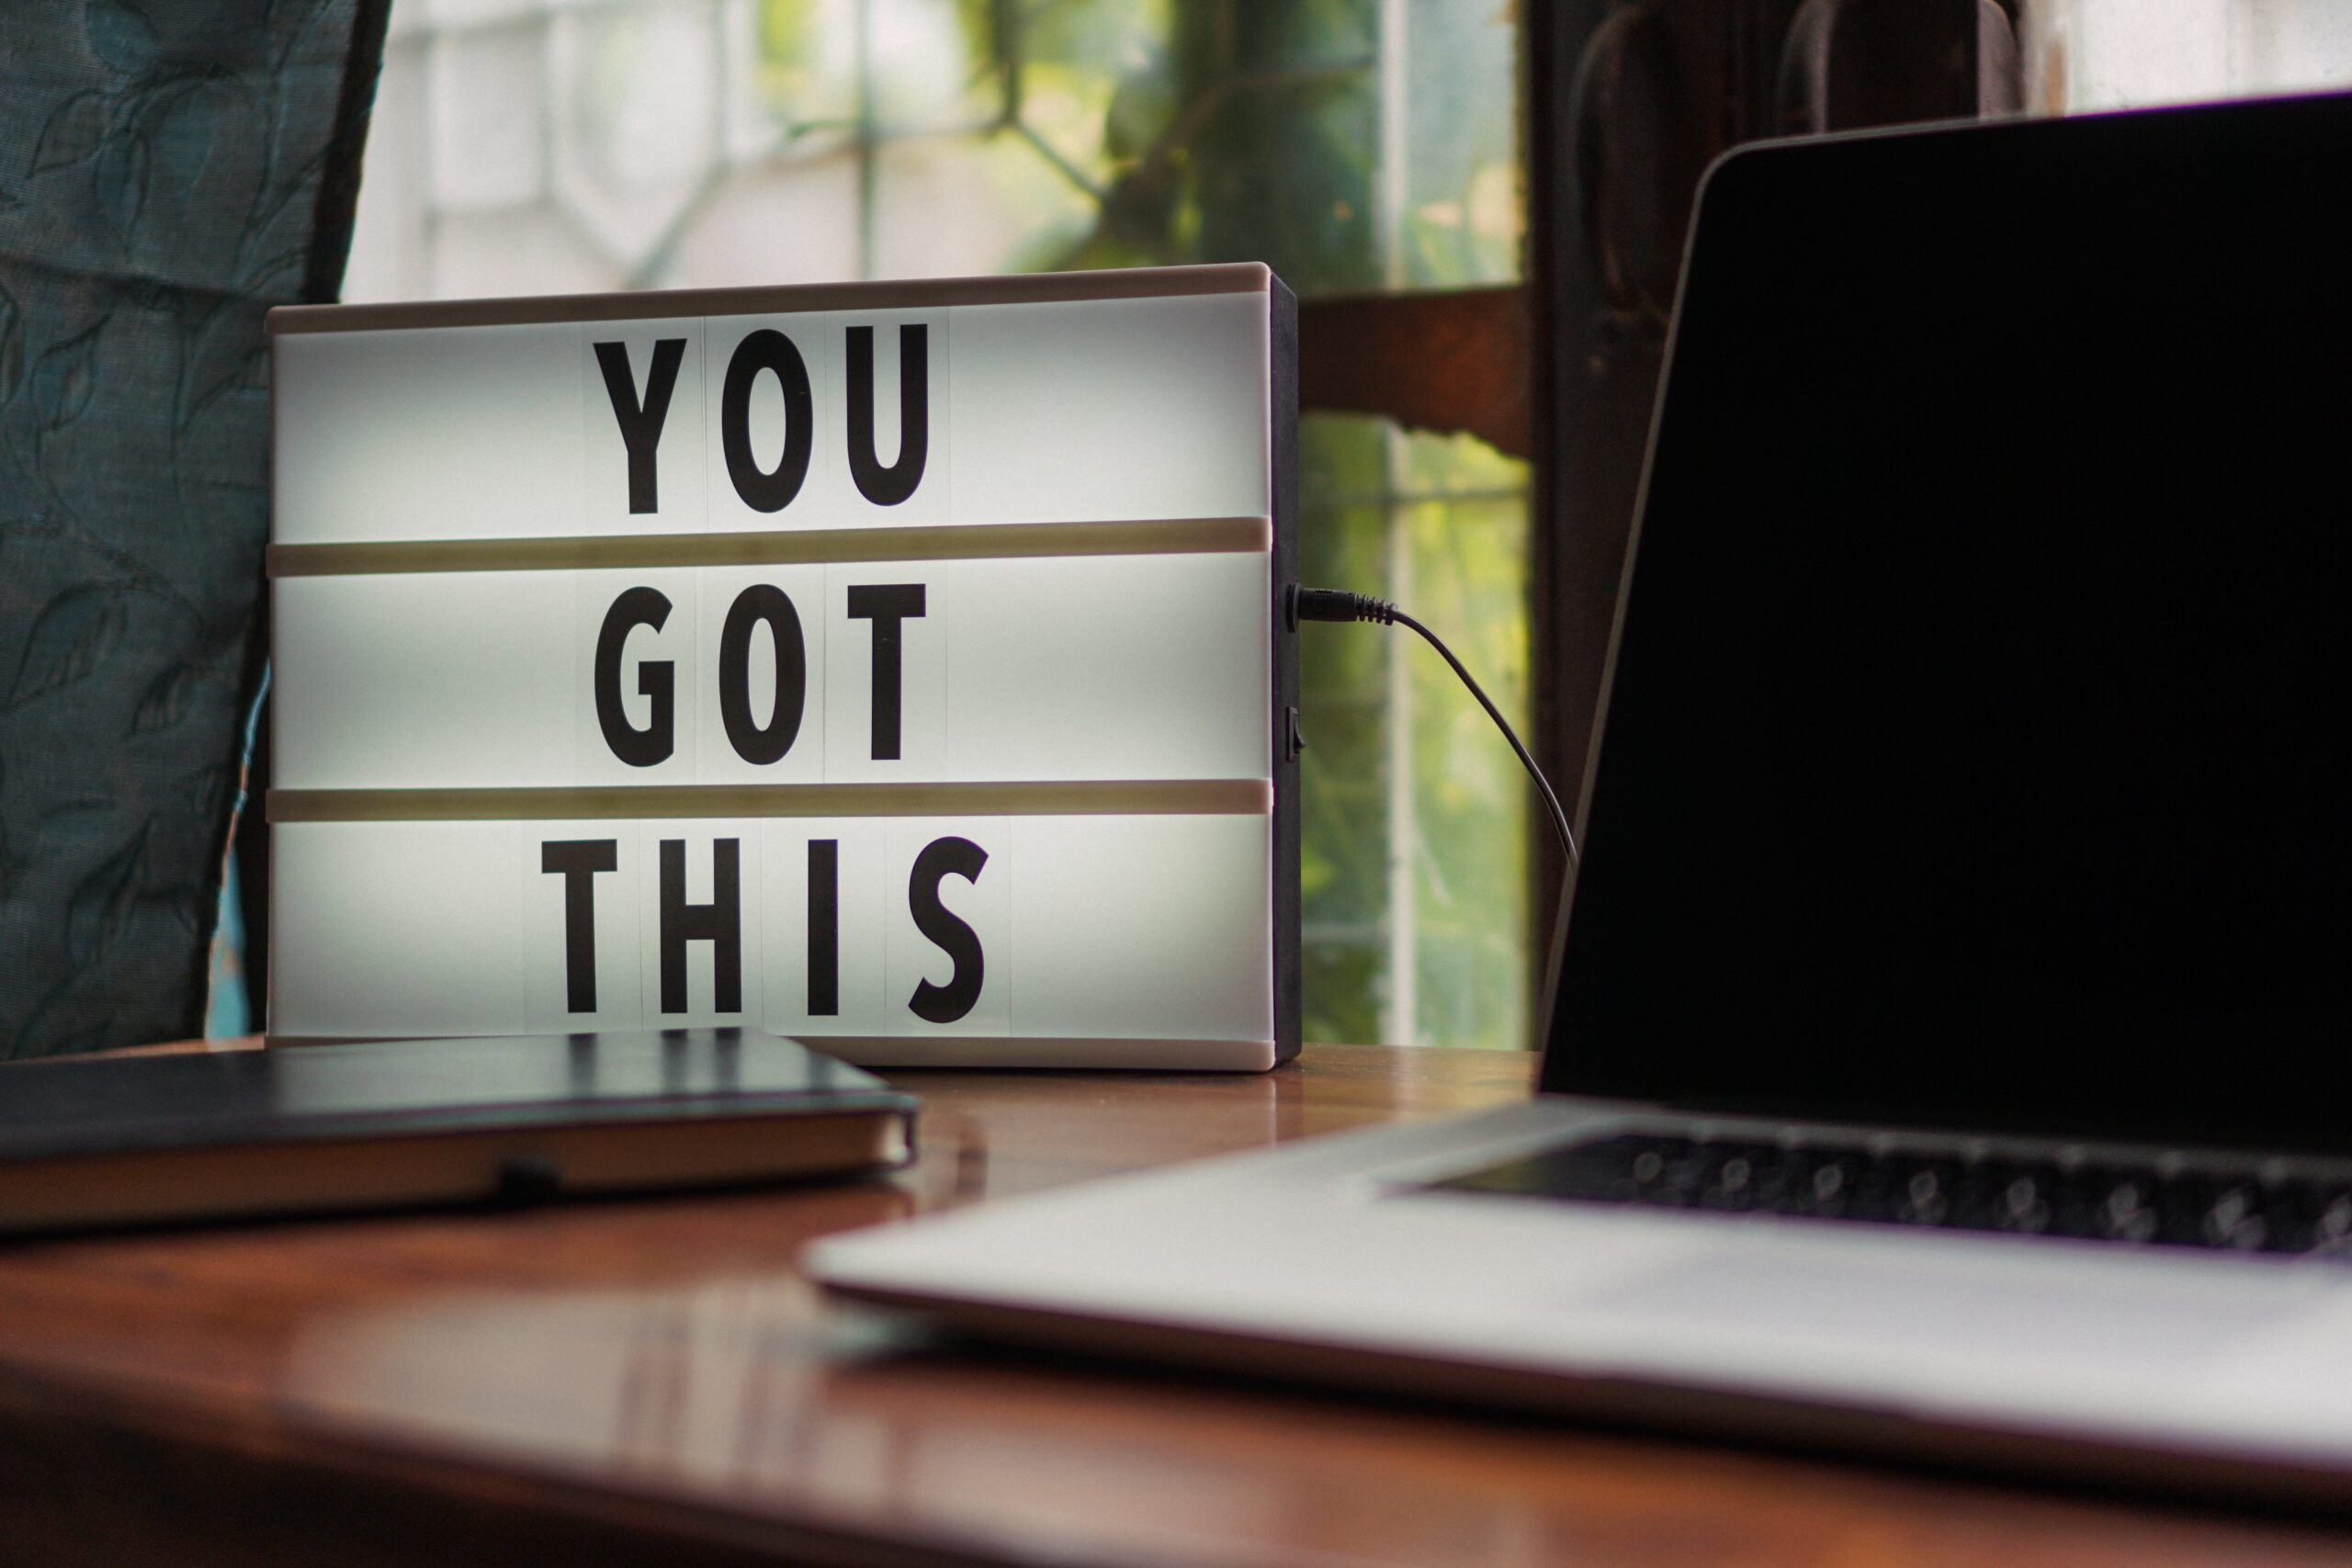 HOW CAN I STAY MOTIVATED AT WORK?